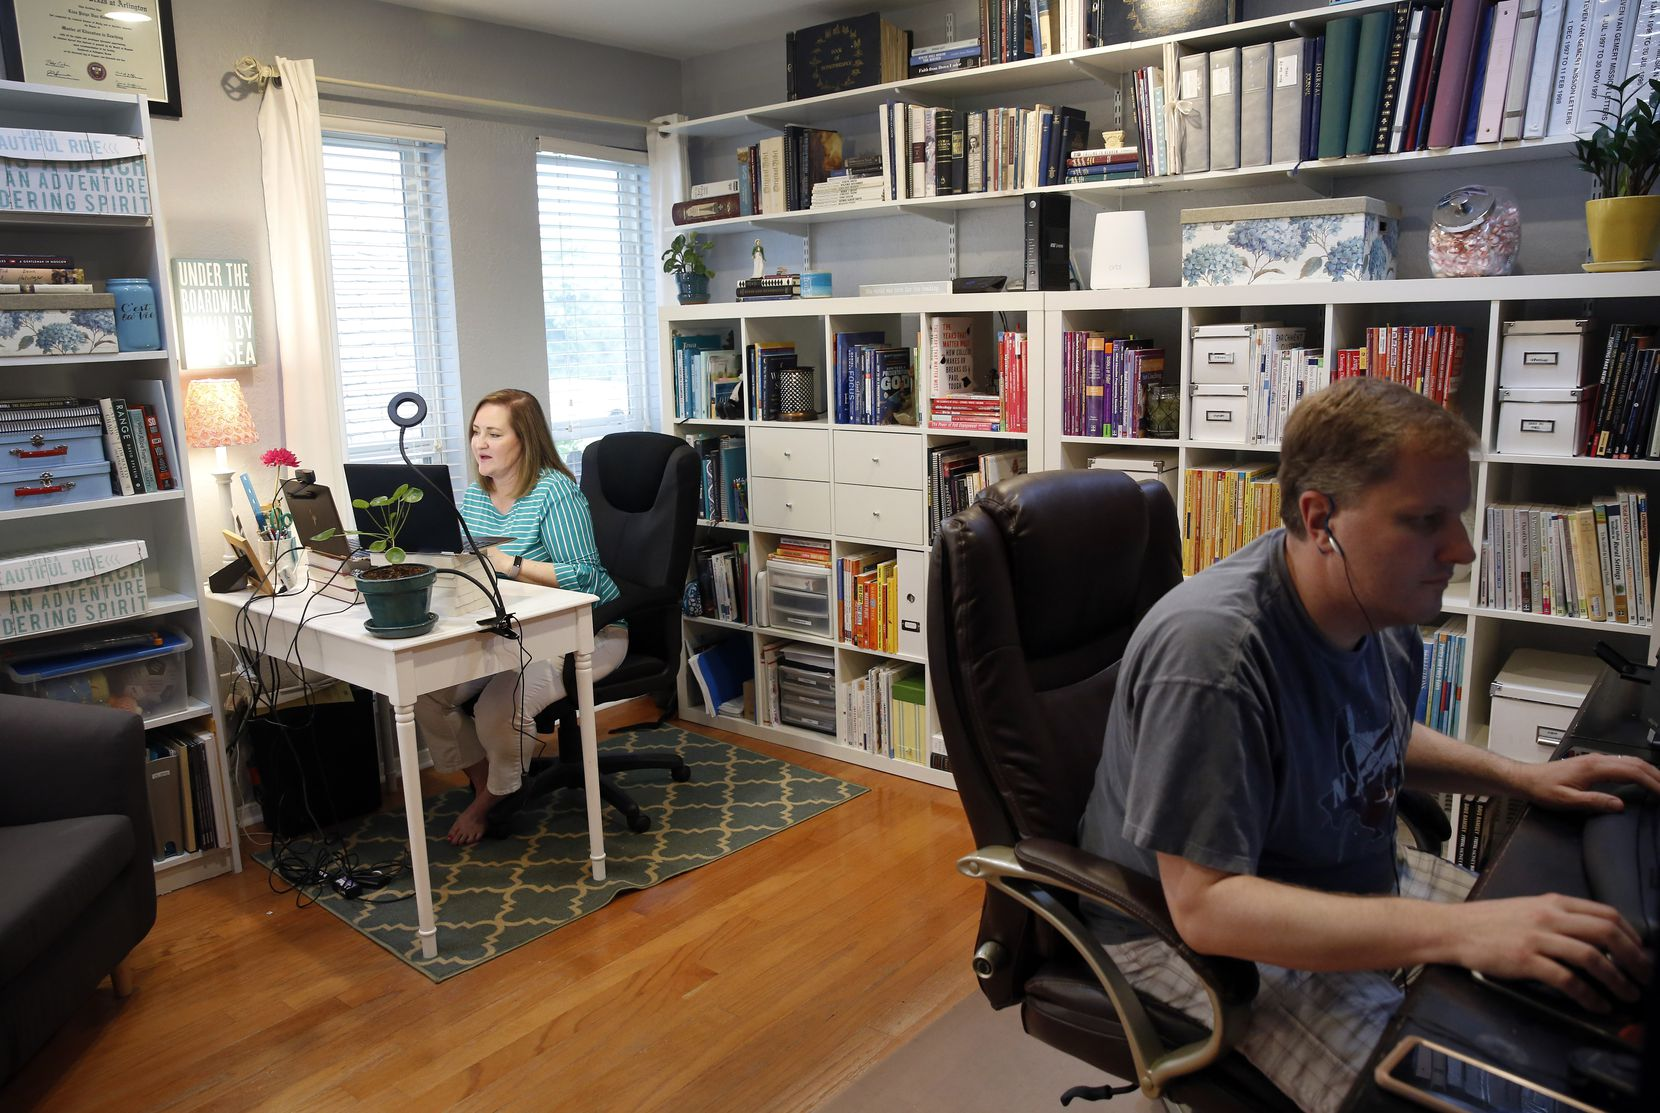 Lisa Van Gemert (left), a former Martin High assistant principal and Lamar High teacher, who now trains teachers, receives technical help from her husband, Steven Van Gemert, as she delivers her live, daily English class on YouTube from their north Arlington home, Tuesday March 17, 2020.